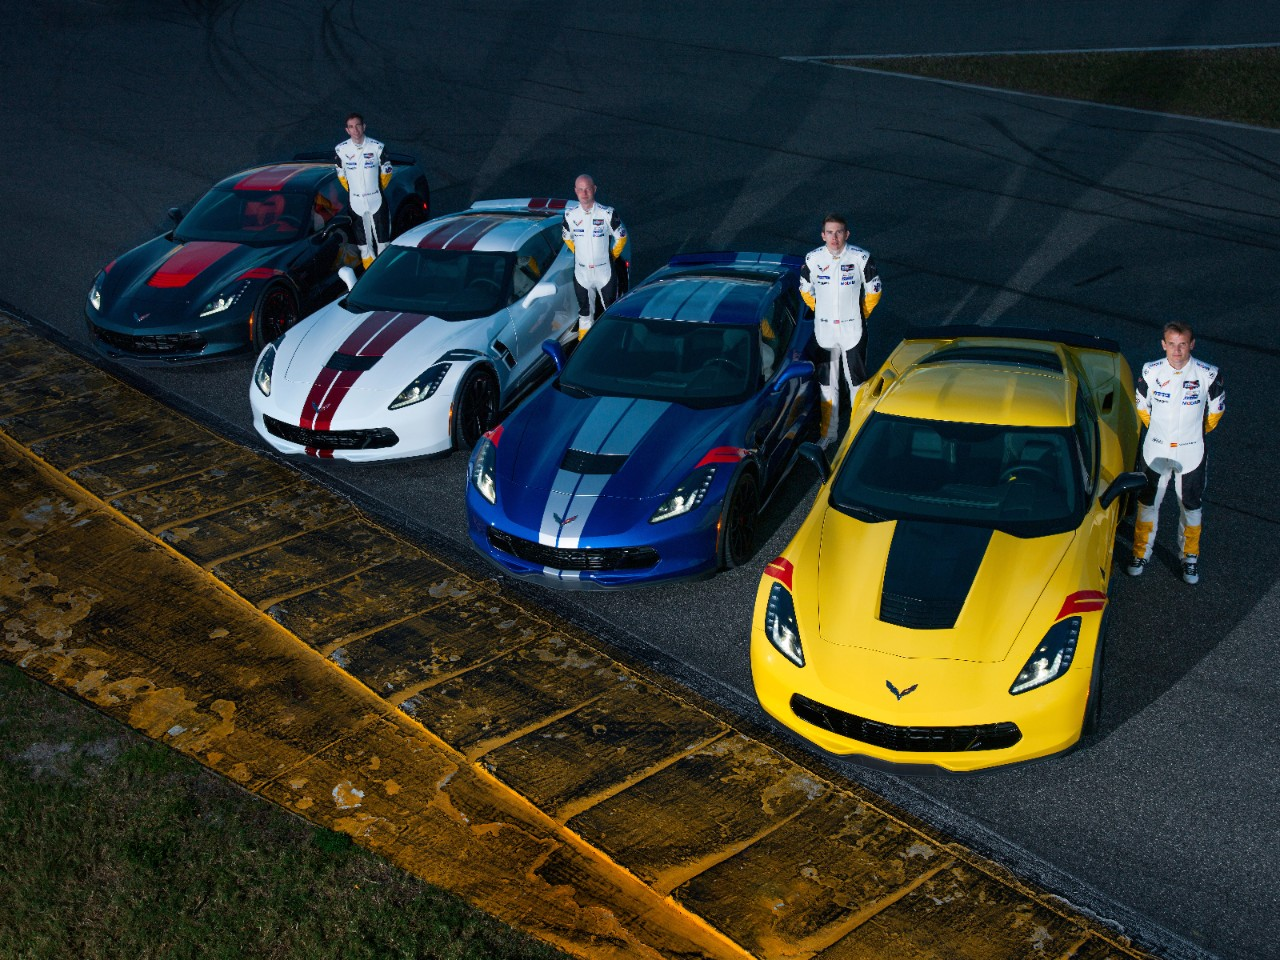 Introducing the 2019 Corvette Drivers Series — special-edition Grand Sport models designed in collaboration with the Corvette Racing team.